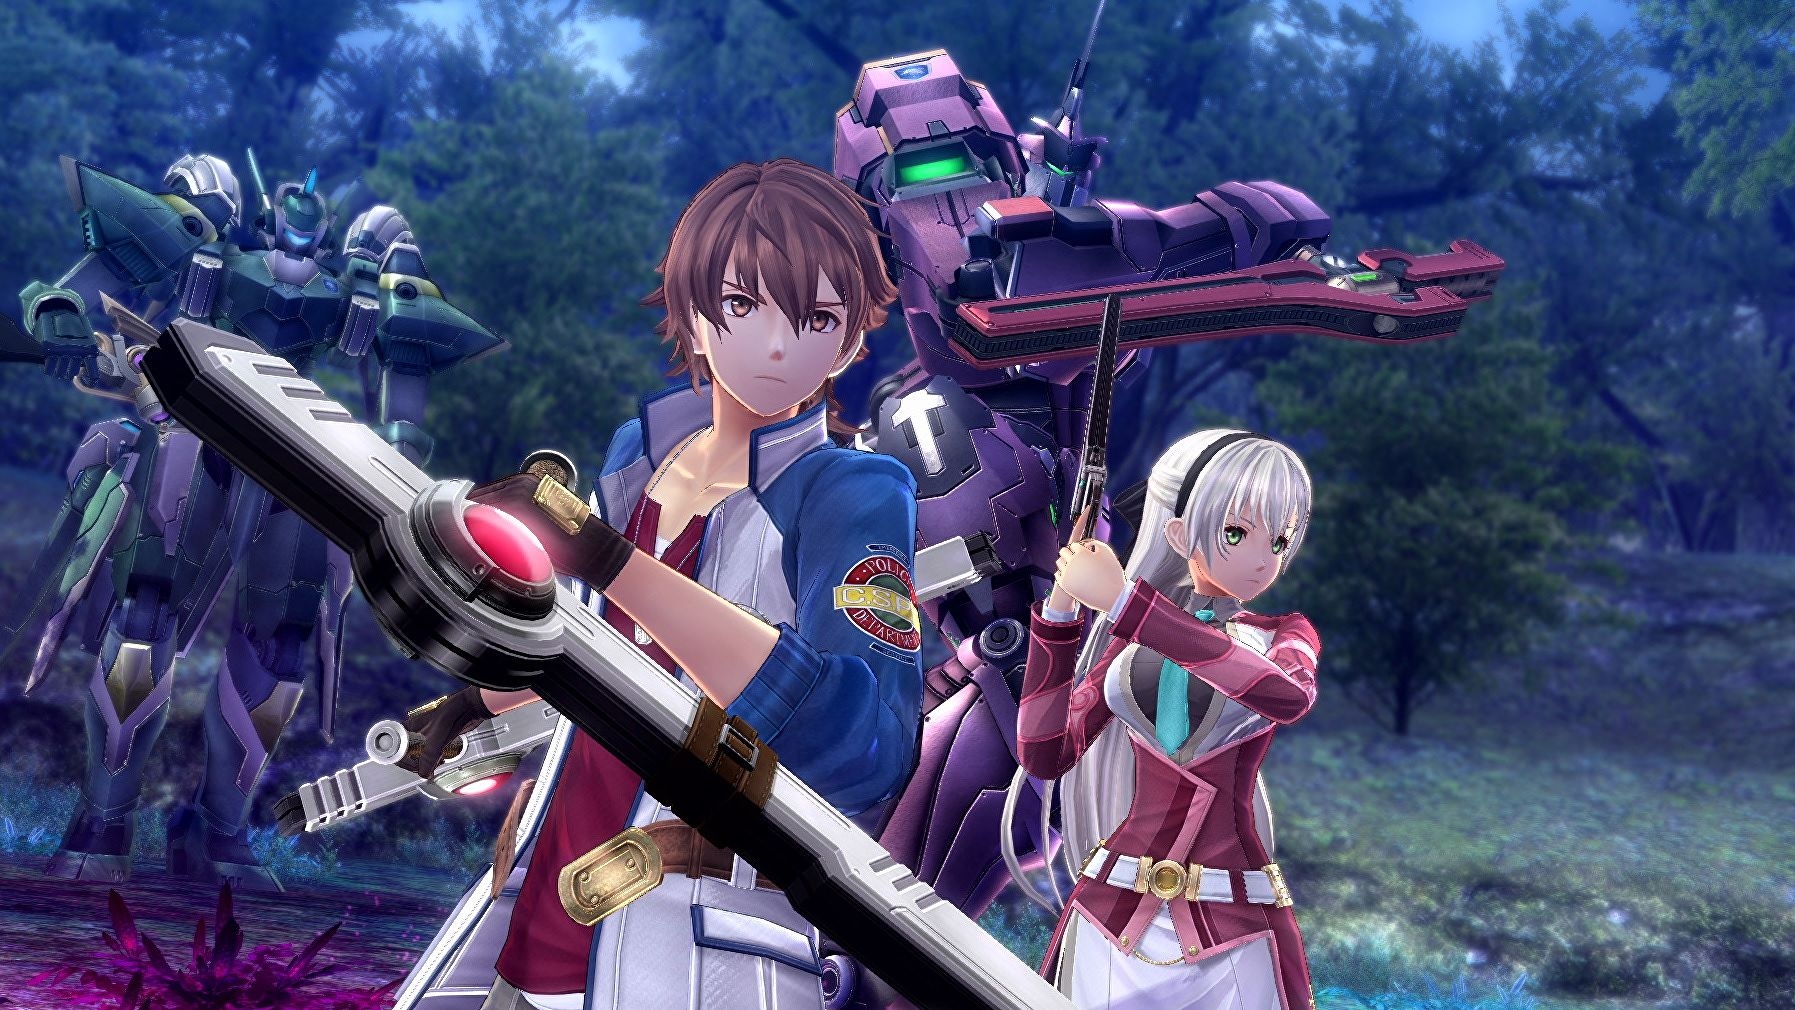 The Legend Of Heroes: Trails Of Cold Steel IV is out now on PC